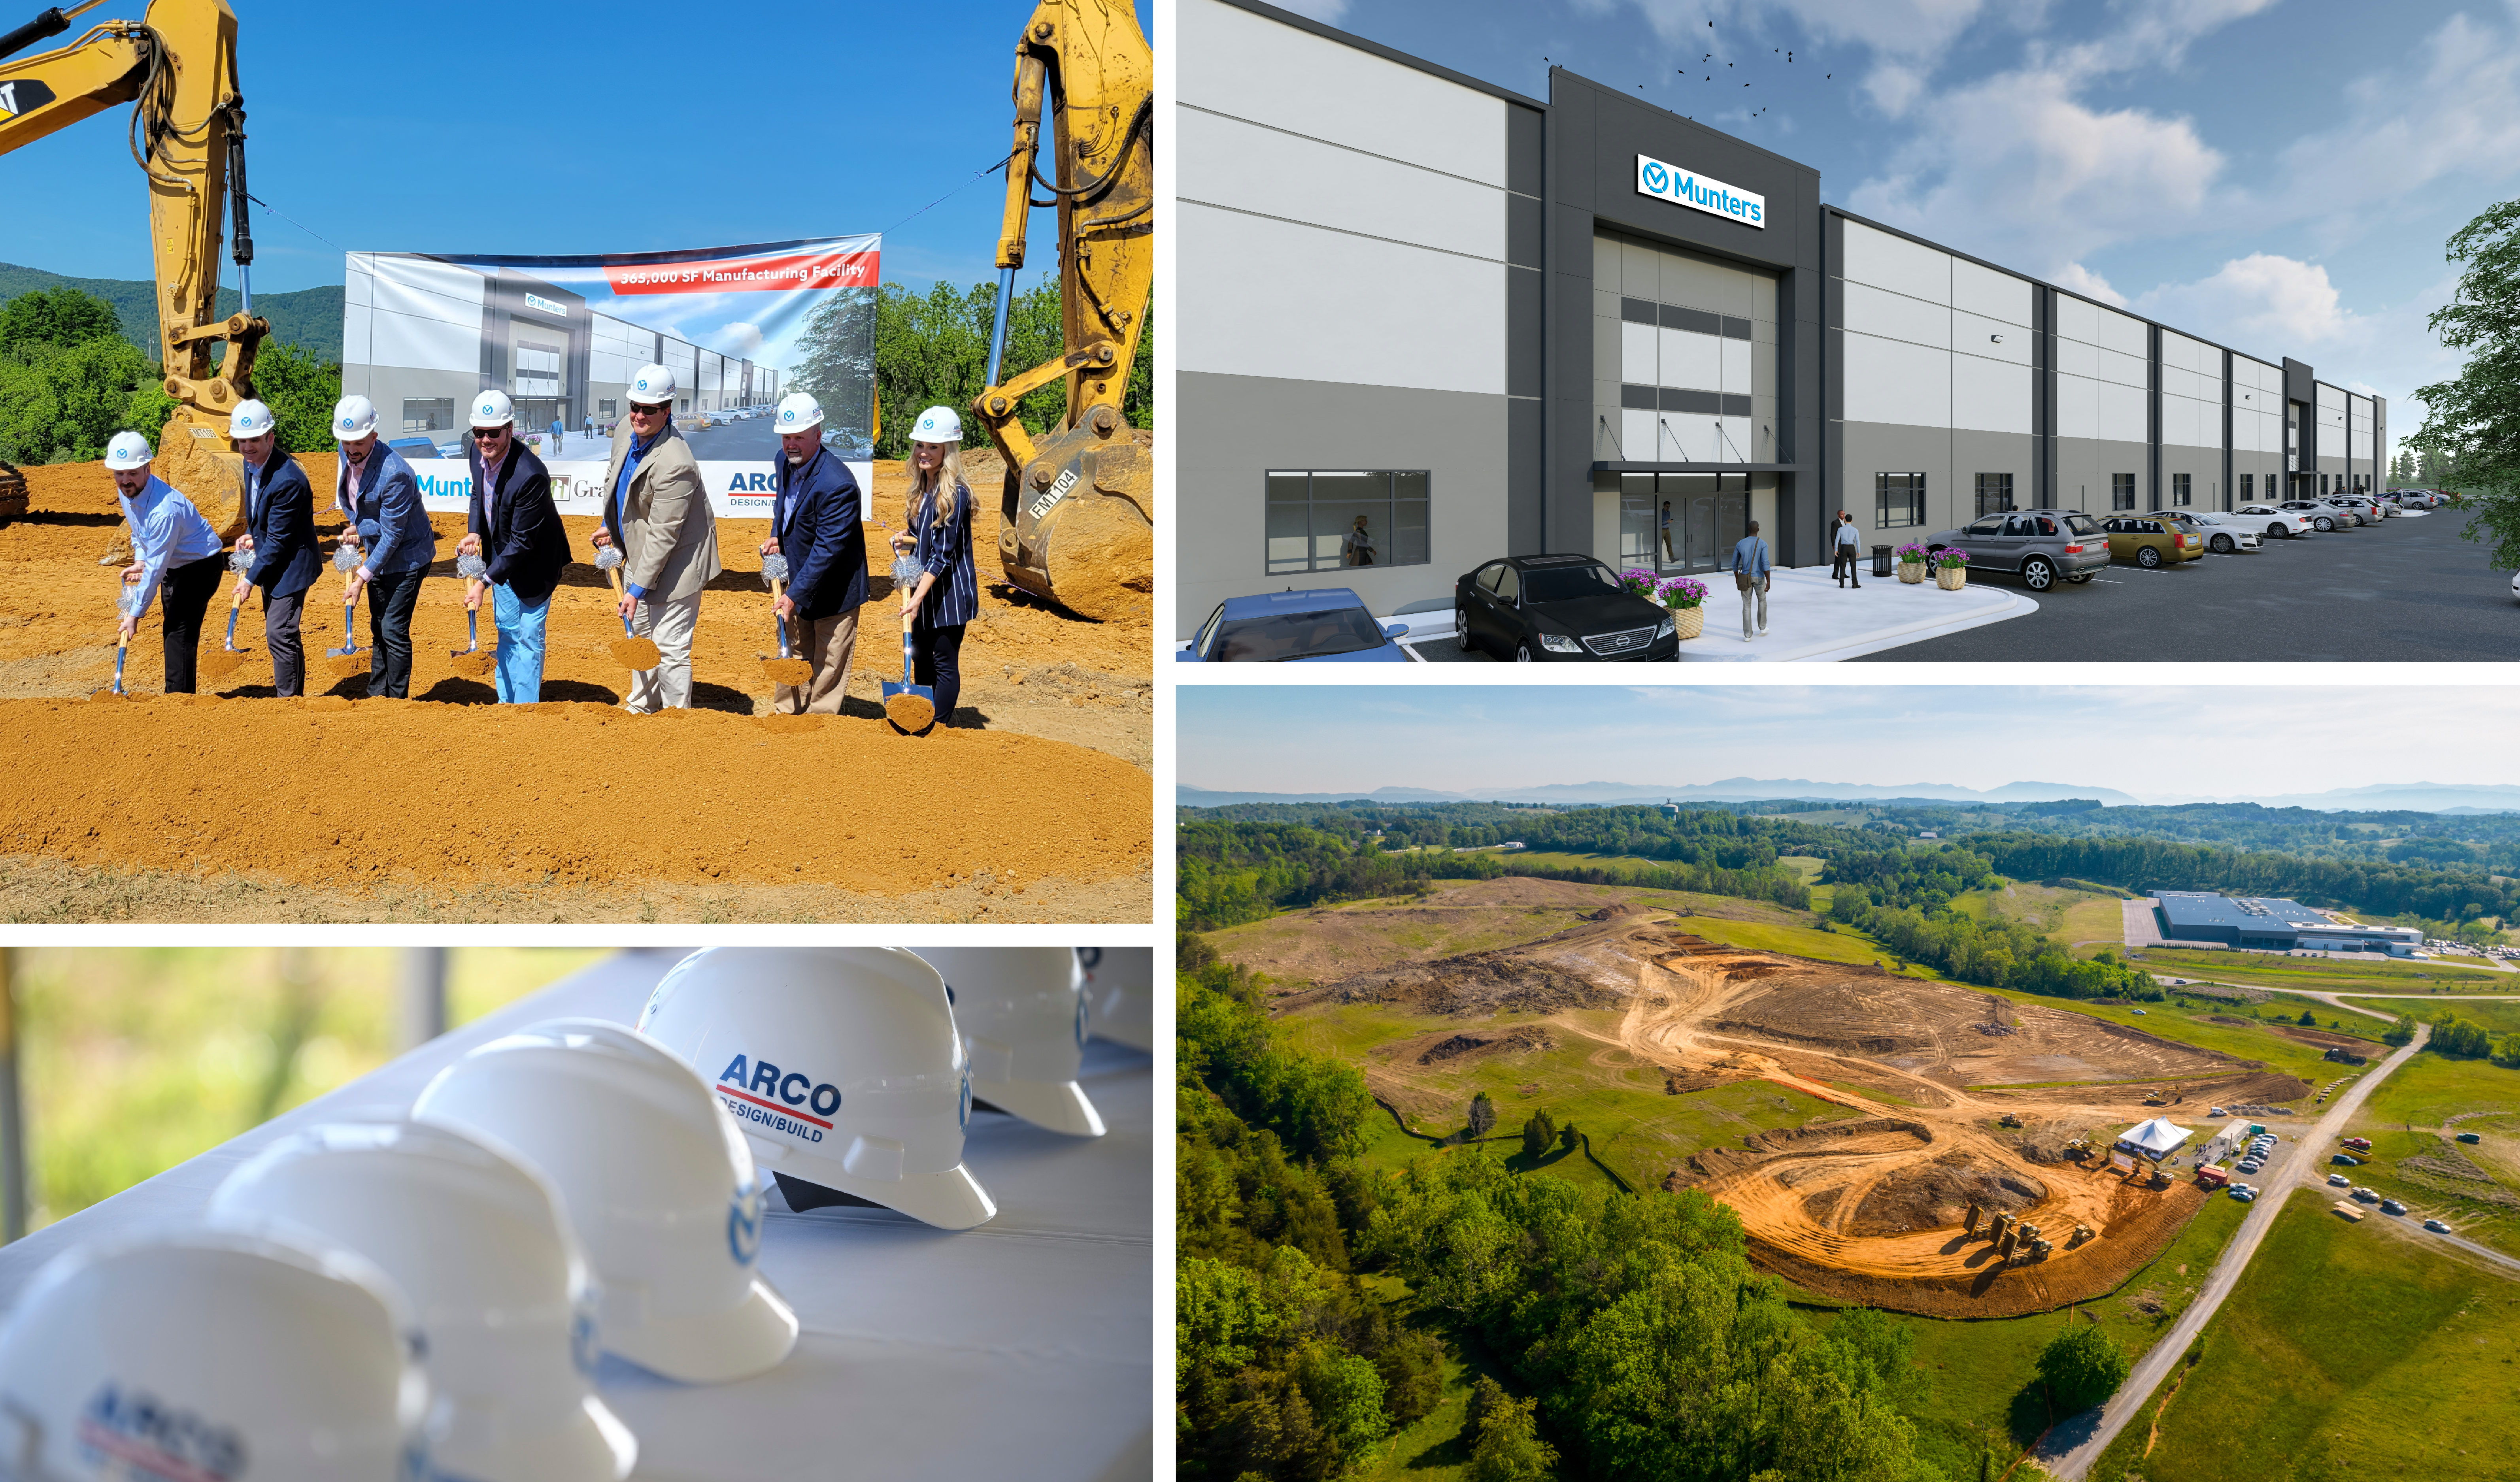 Munters Breaks Ground on New 365,000 SF Manufacturing Facility in Botetourt County, Virginia 9